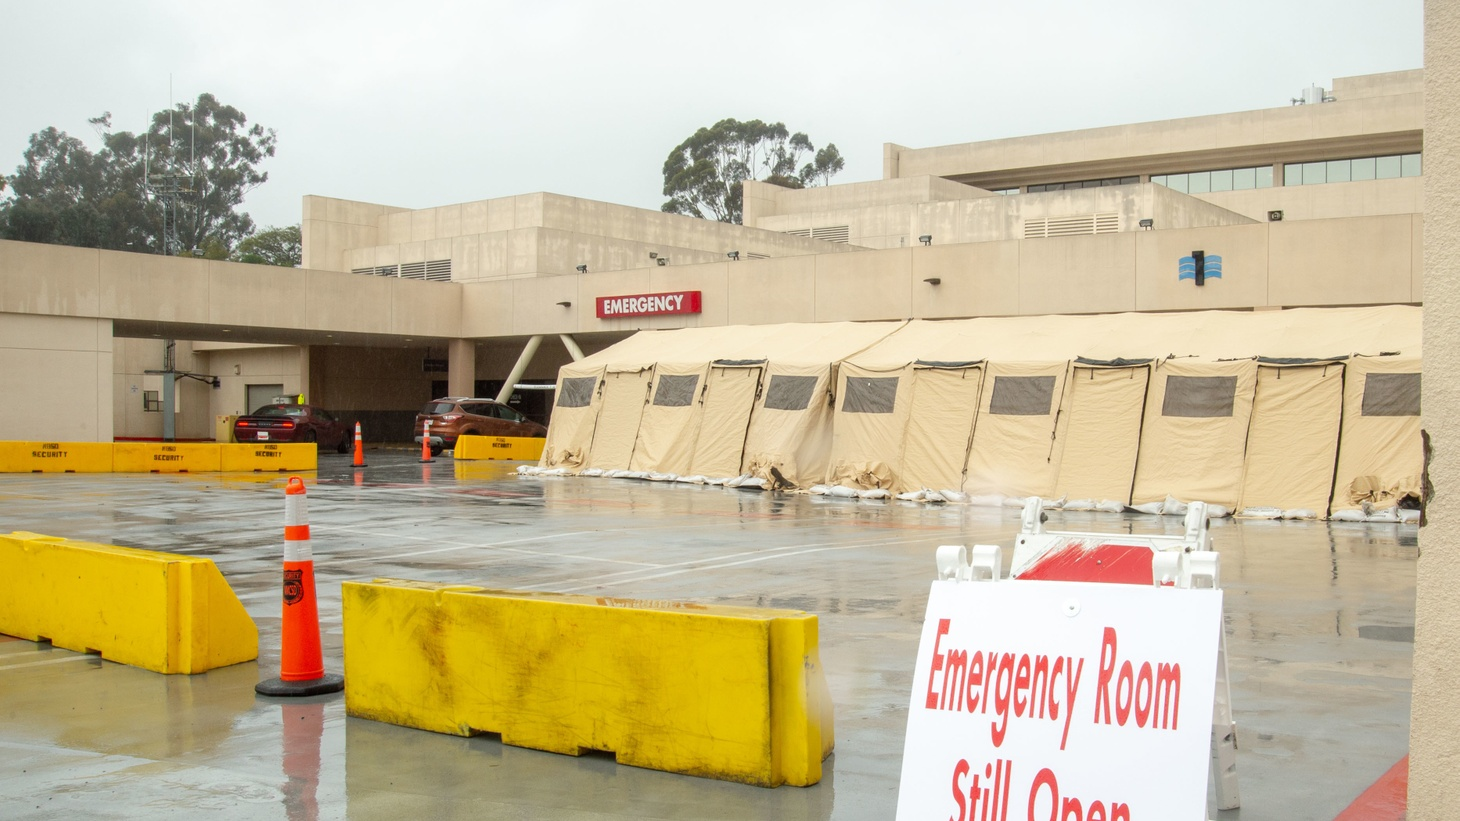 Naval Medical Center San Diego's (NMCSD) tent stands in front of the hospital's emergency room to treat possible future COVID-19 patients. Mar. 10, 2020.